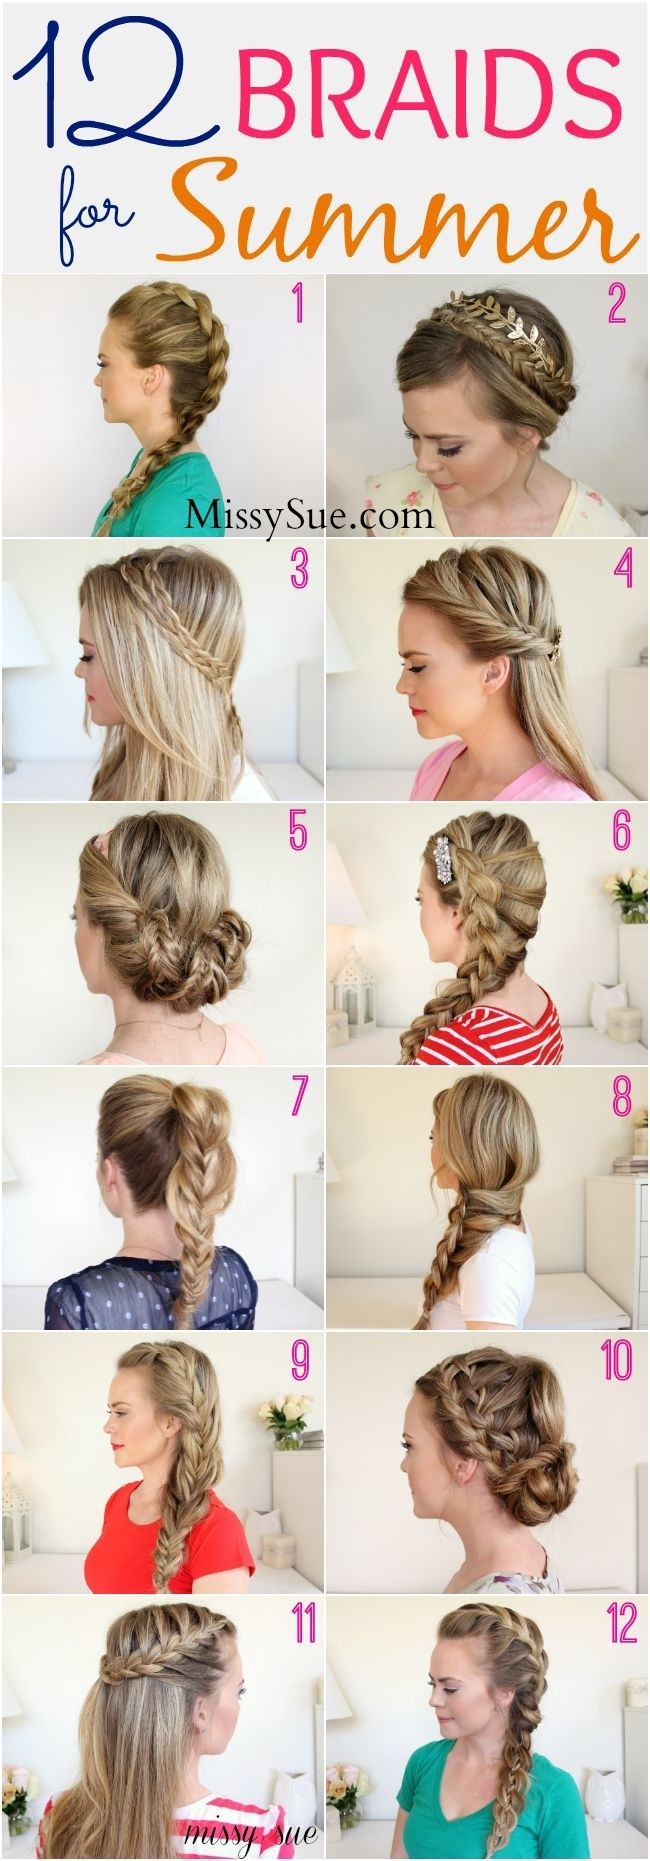 Braids for Summer